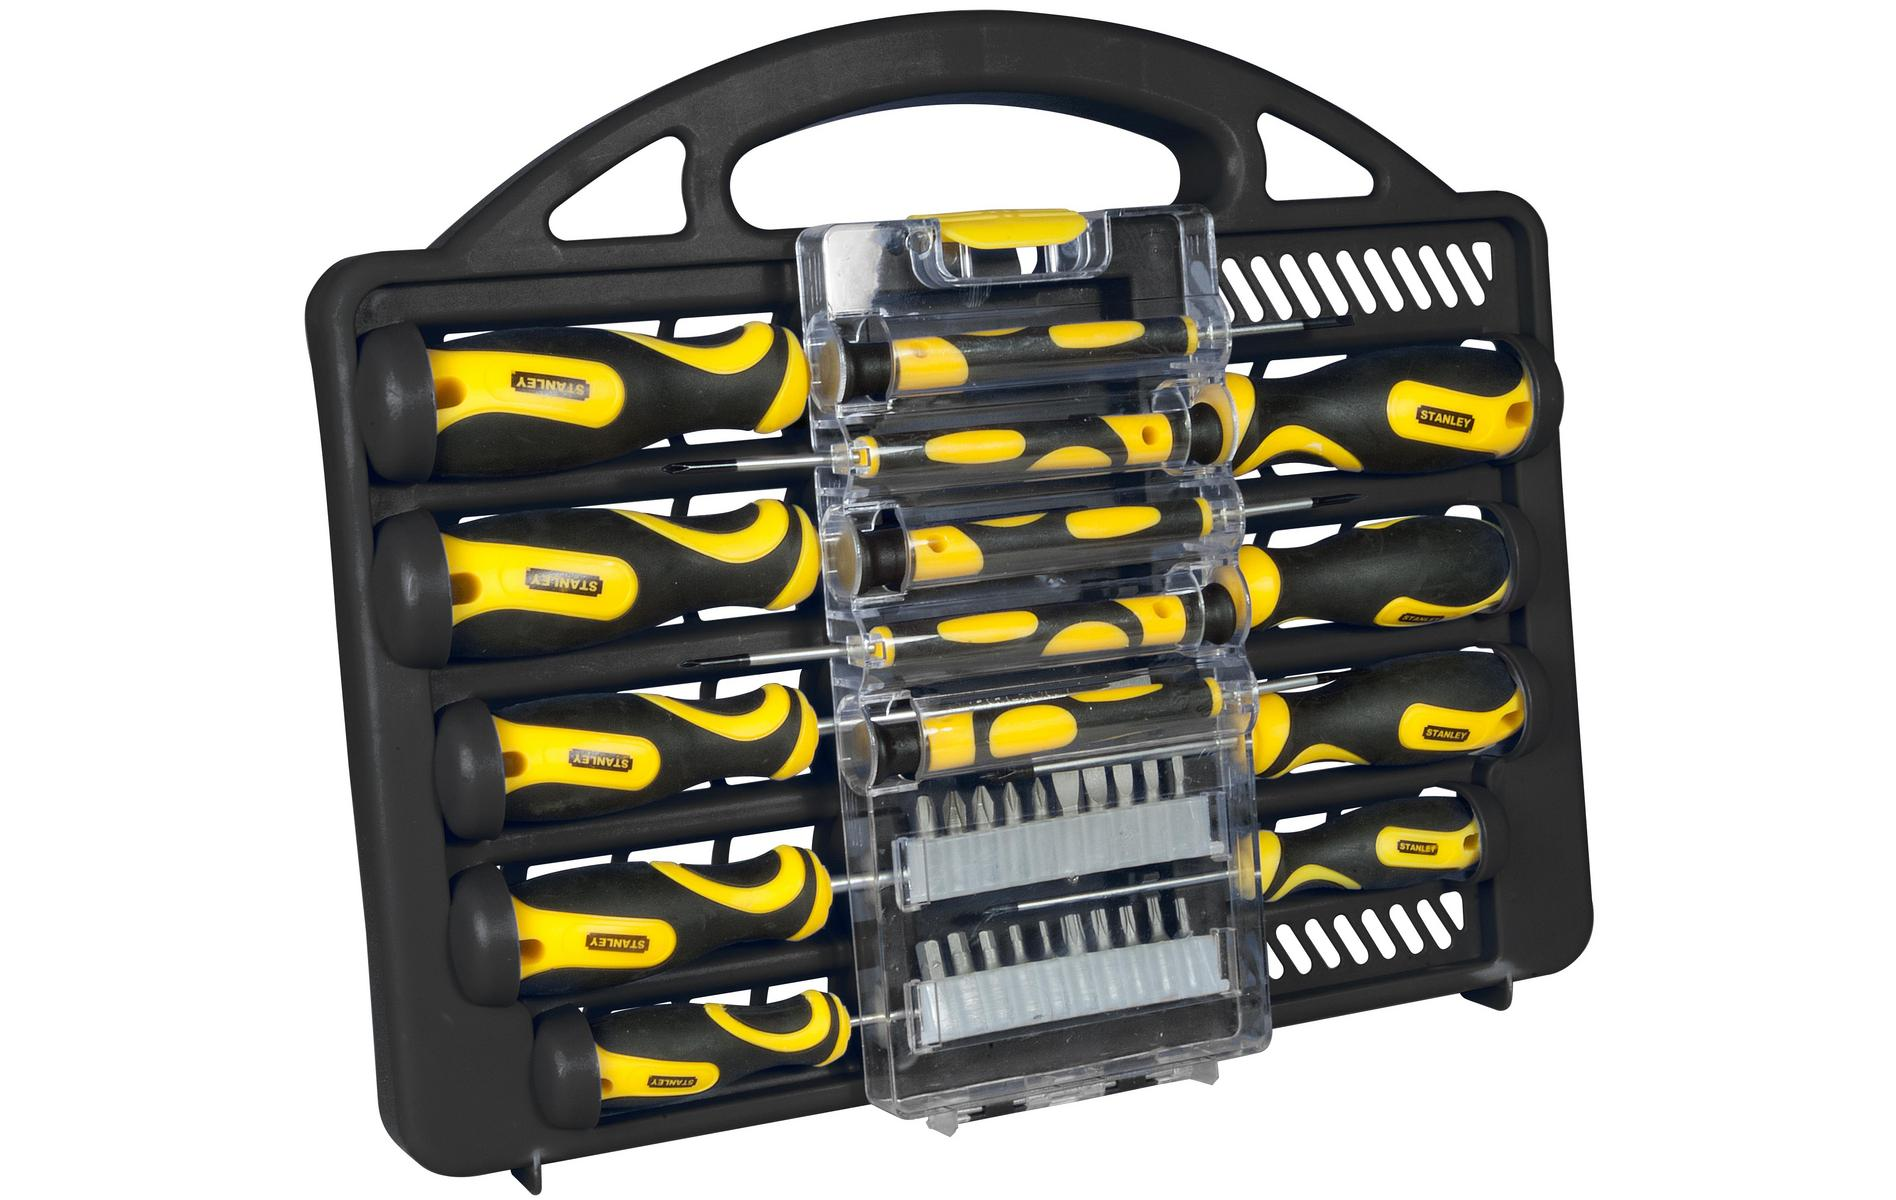 stanley 34 piece screwdriver set 9 halfords grab it 4 free. Black Bedroom Furniture Sets. Home Design Ideas